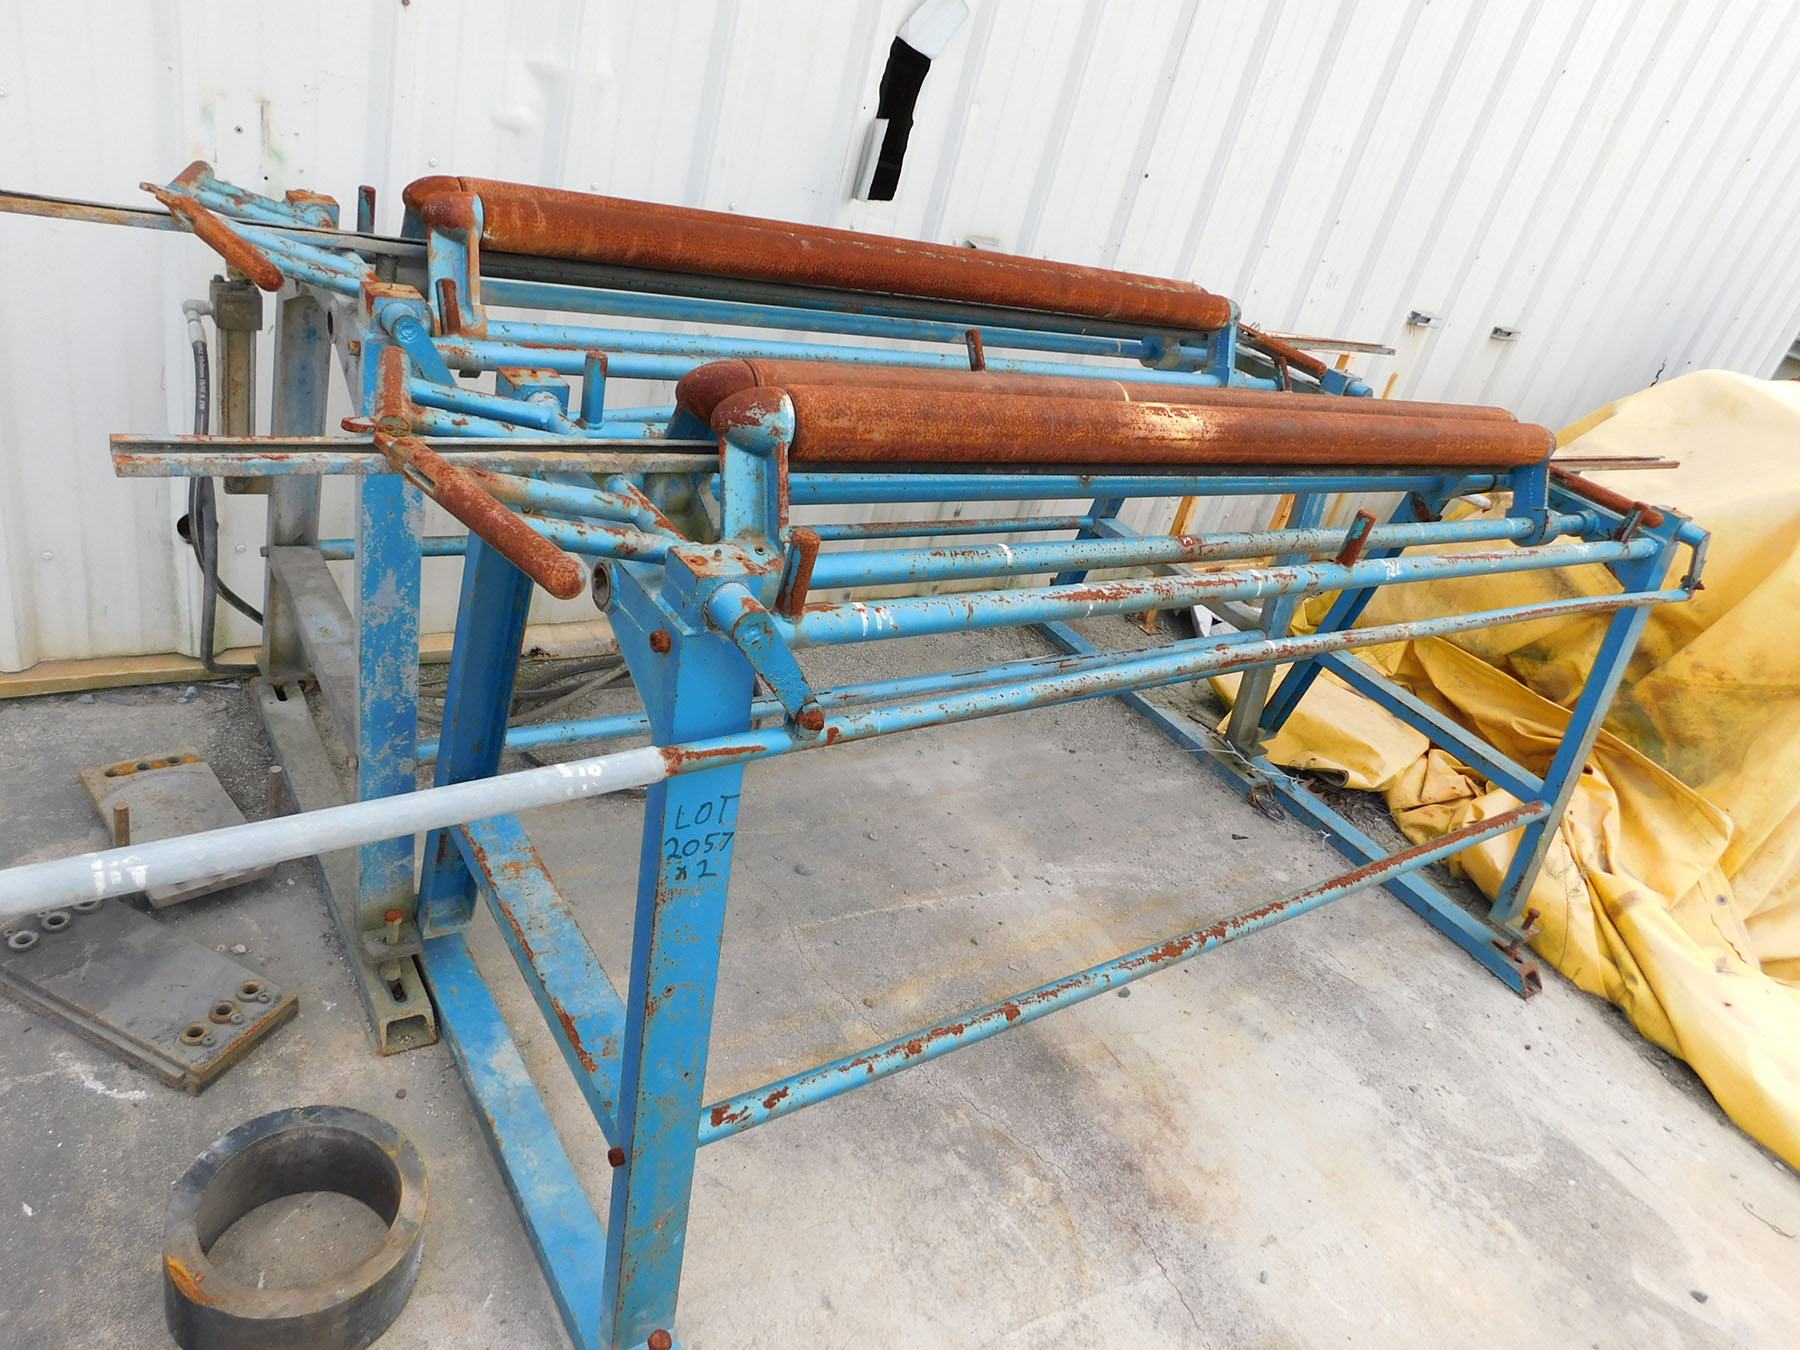 Lot 2057 - (2) PIPE ROLLERS ON STAND